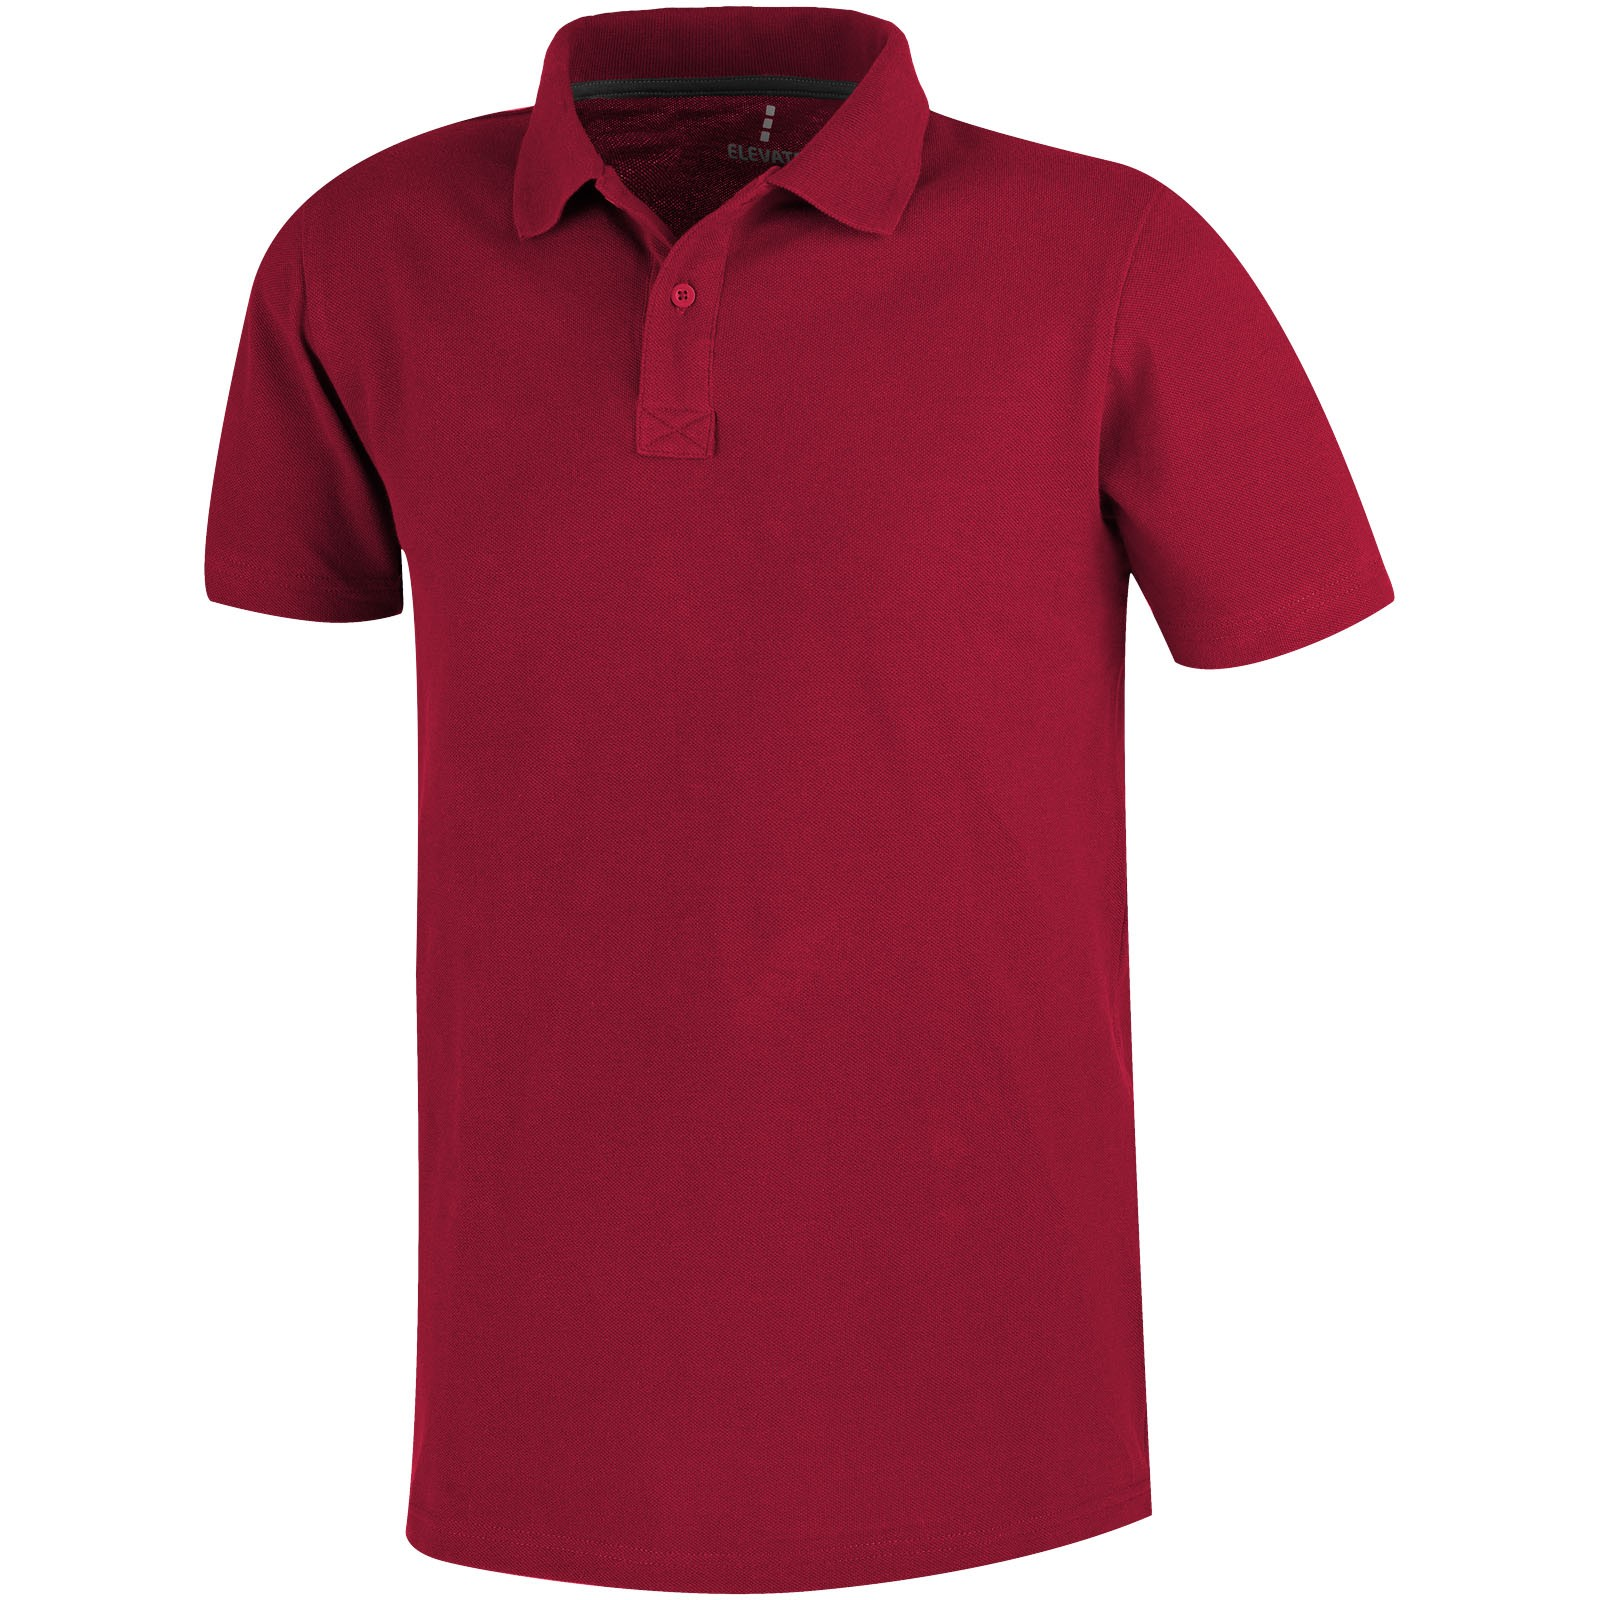 Primus short sleeve men's polo - Red / M